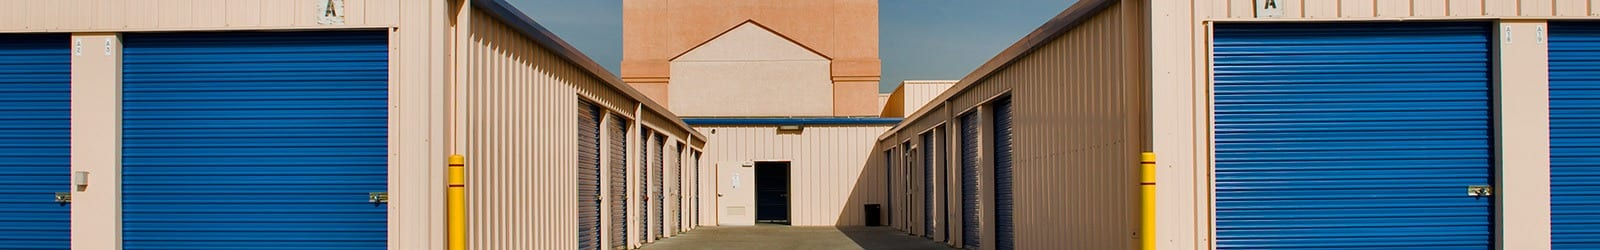 Otay Mesa Self Storage Unit Sizes and Prices